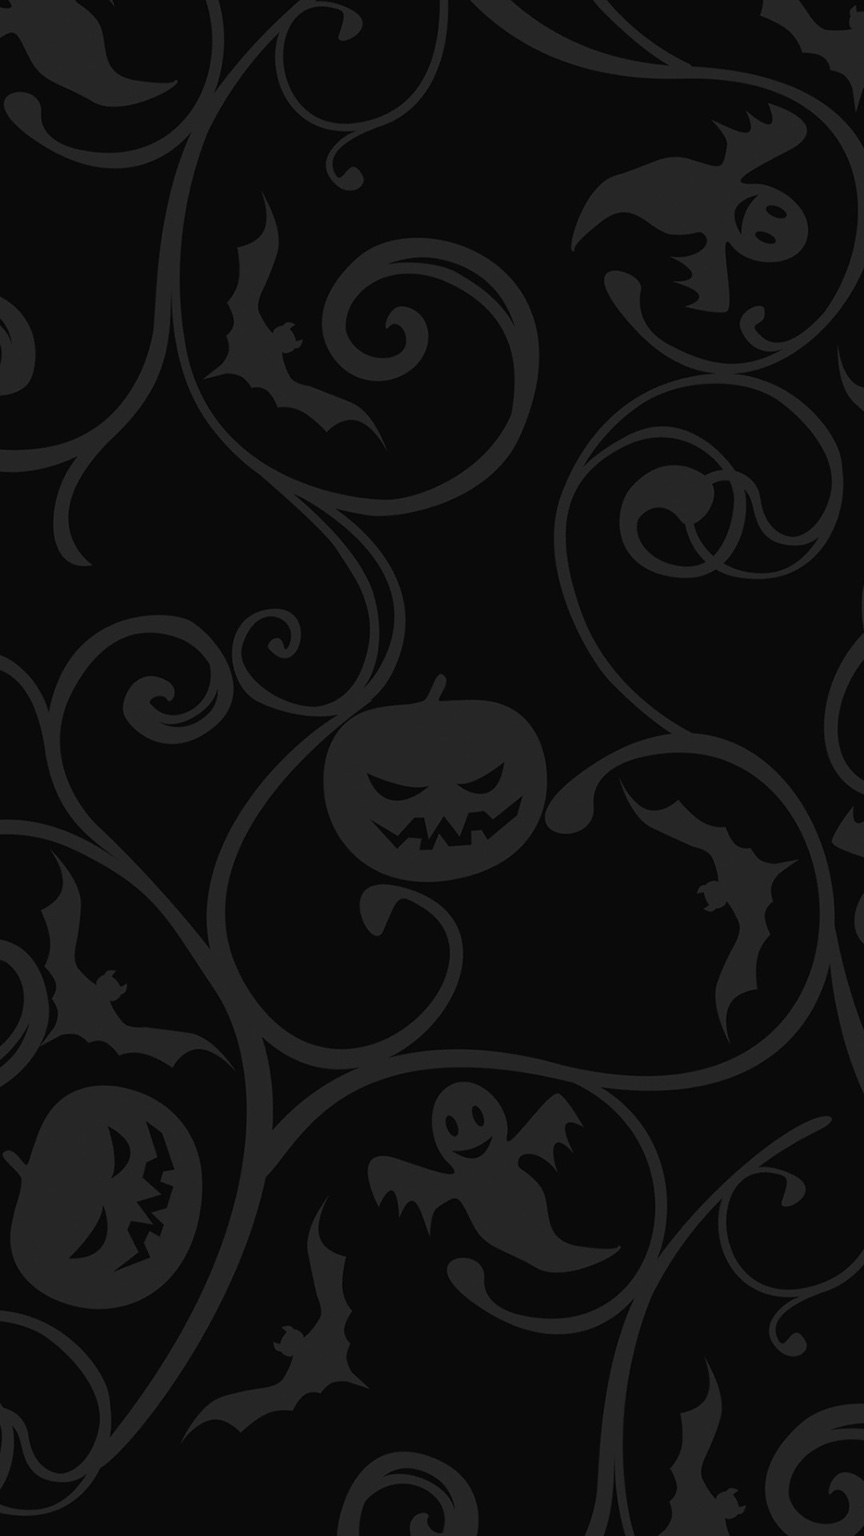 Black Themed Homescreen Wallpapers Iphone Ipad Ipod Forums At Imore Com